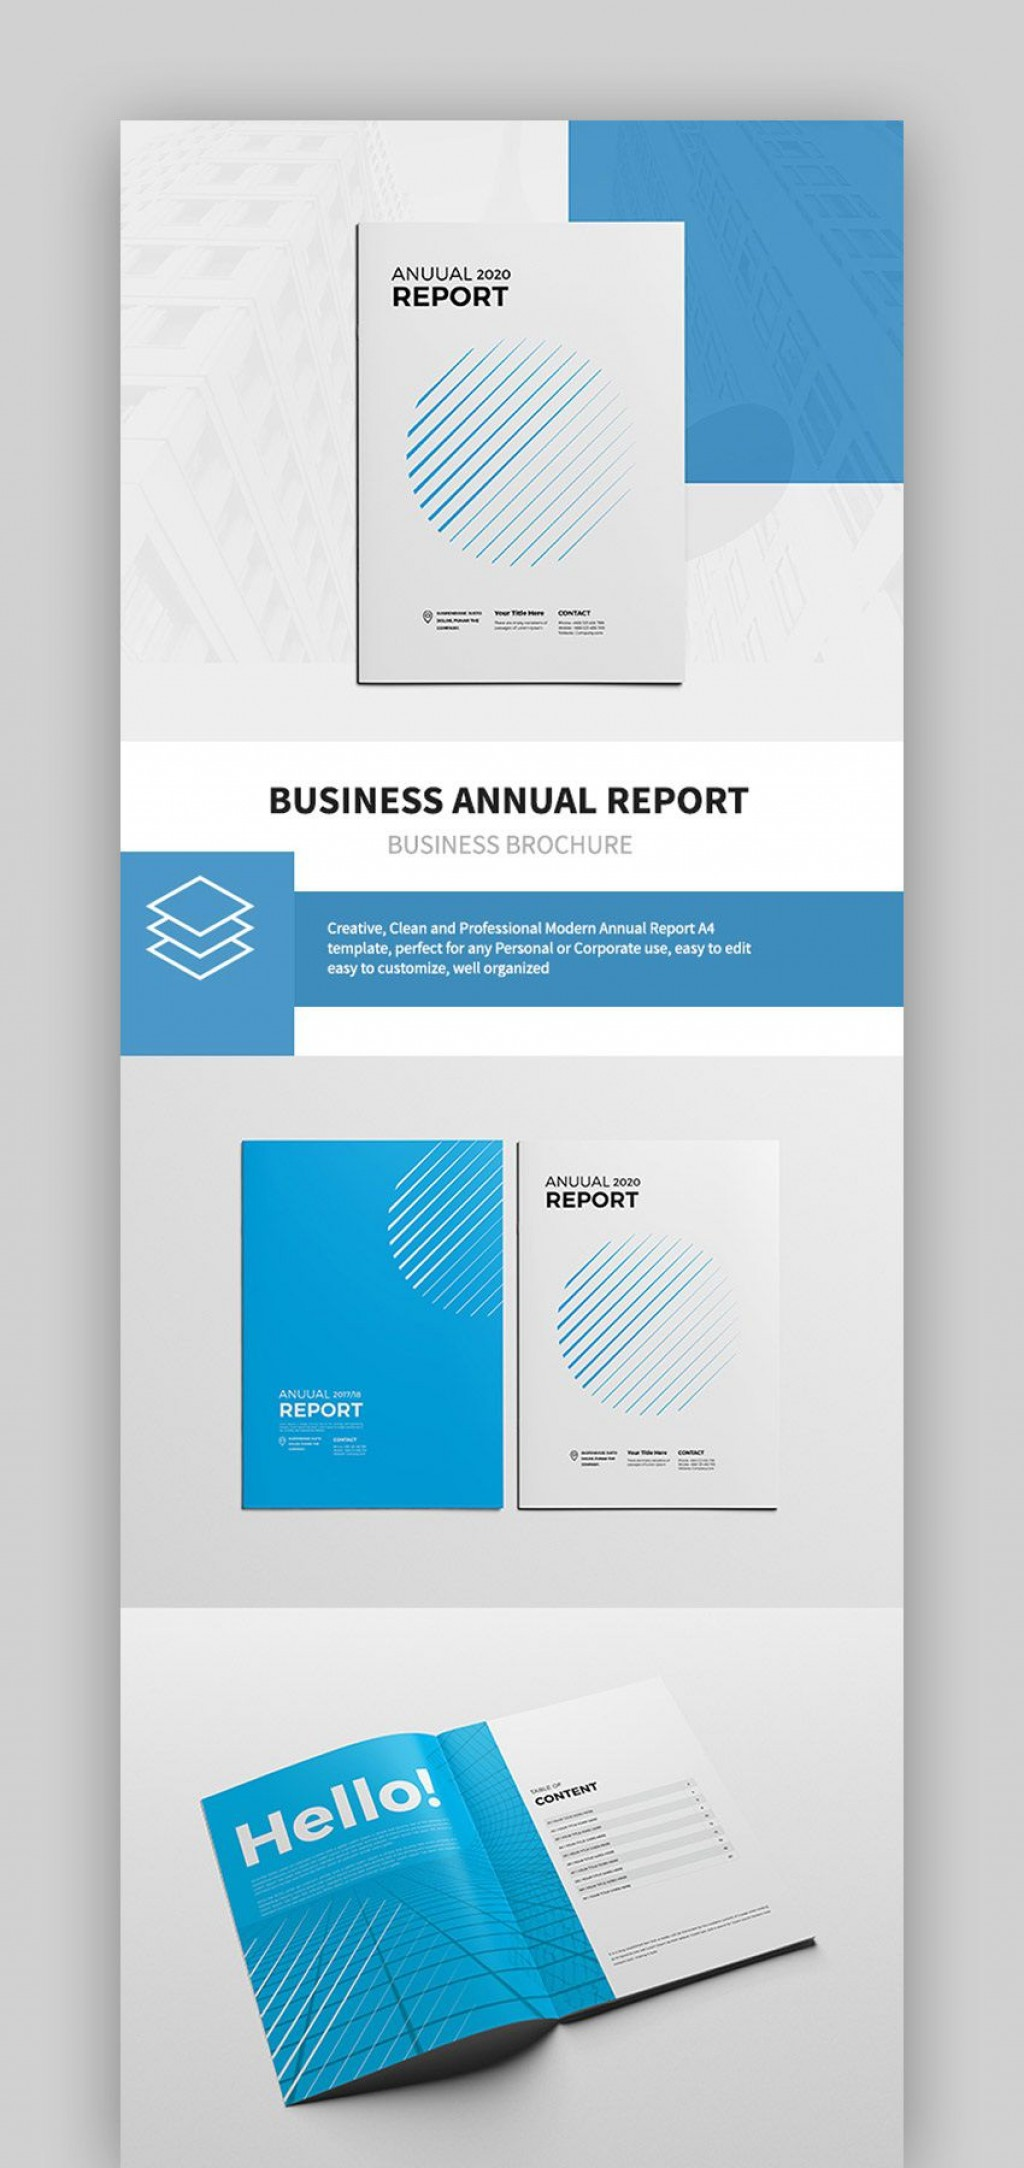 002 Stunning Free Adobe Indesign Annual Report Template High Resolution Large